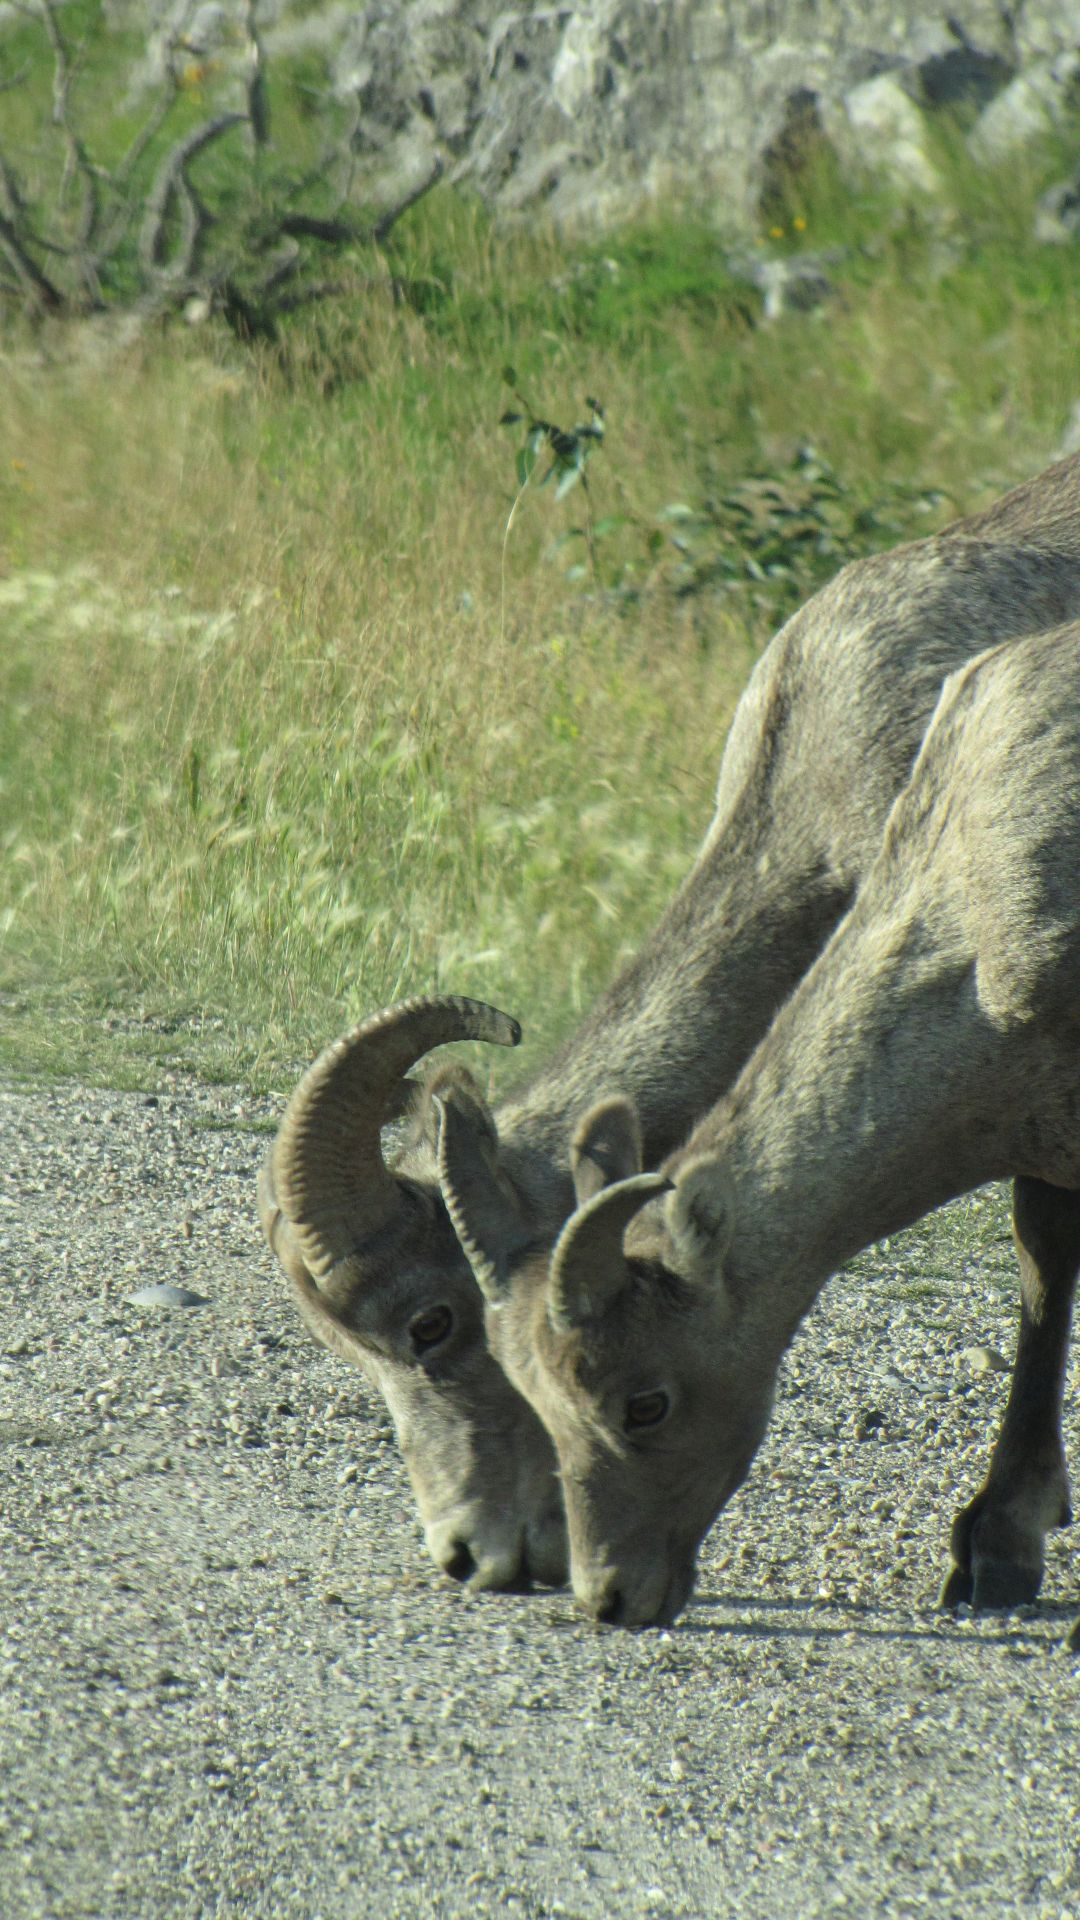 Nr Jasper, Alberta, Canada - Big Horn Sheep fall for the velcro-ear gag